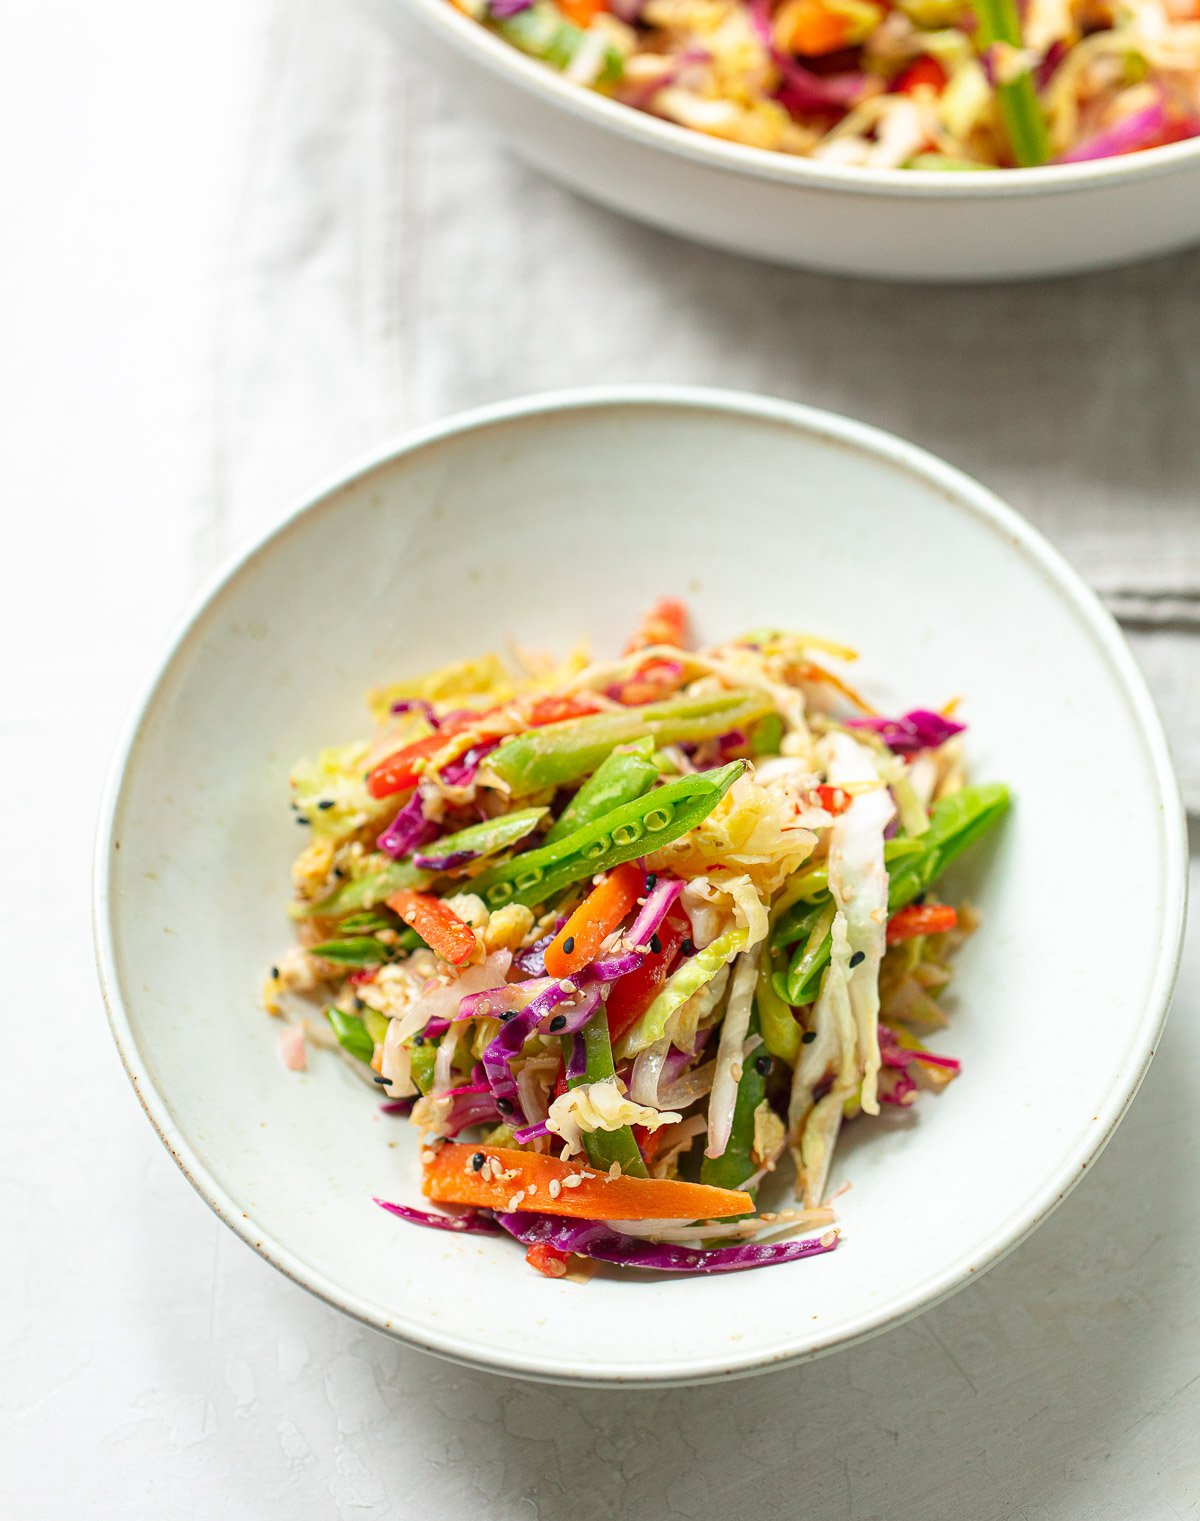 Green and red cabbage slaw mixed with carrots, snowpeas and sesame dressing in a white bowl.